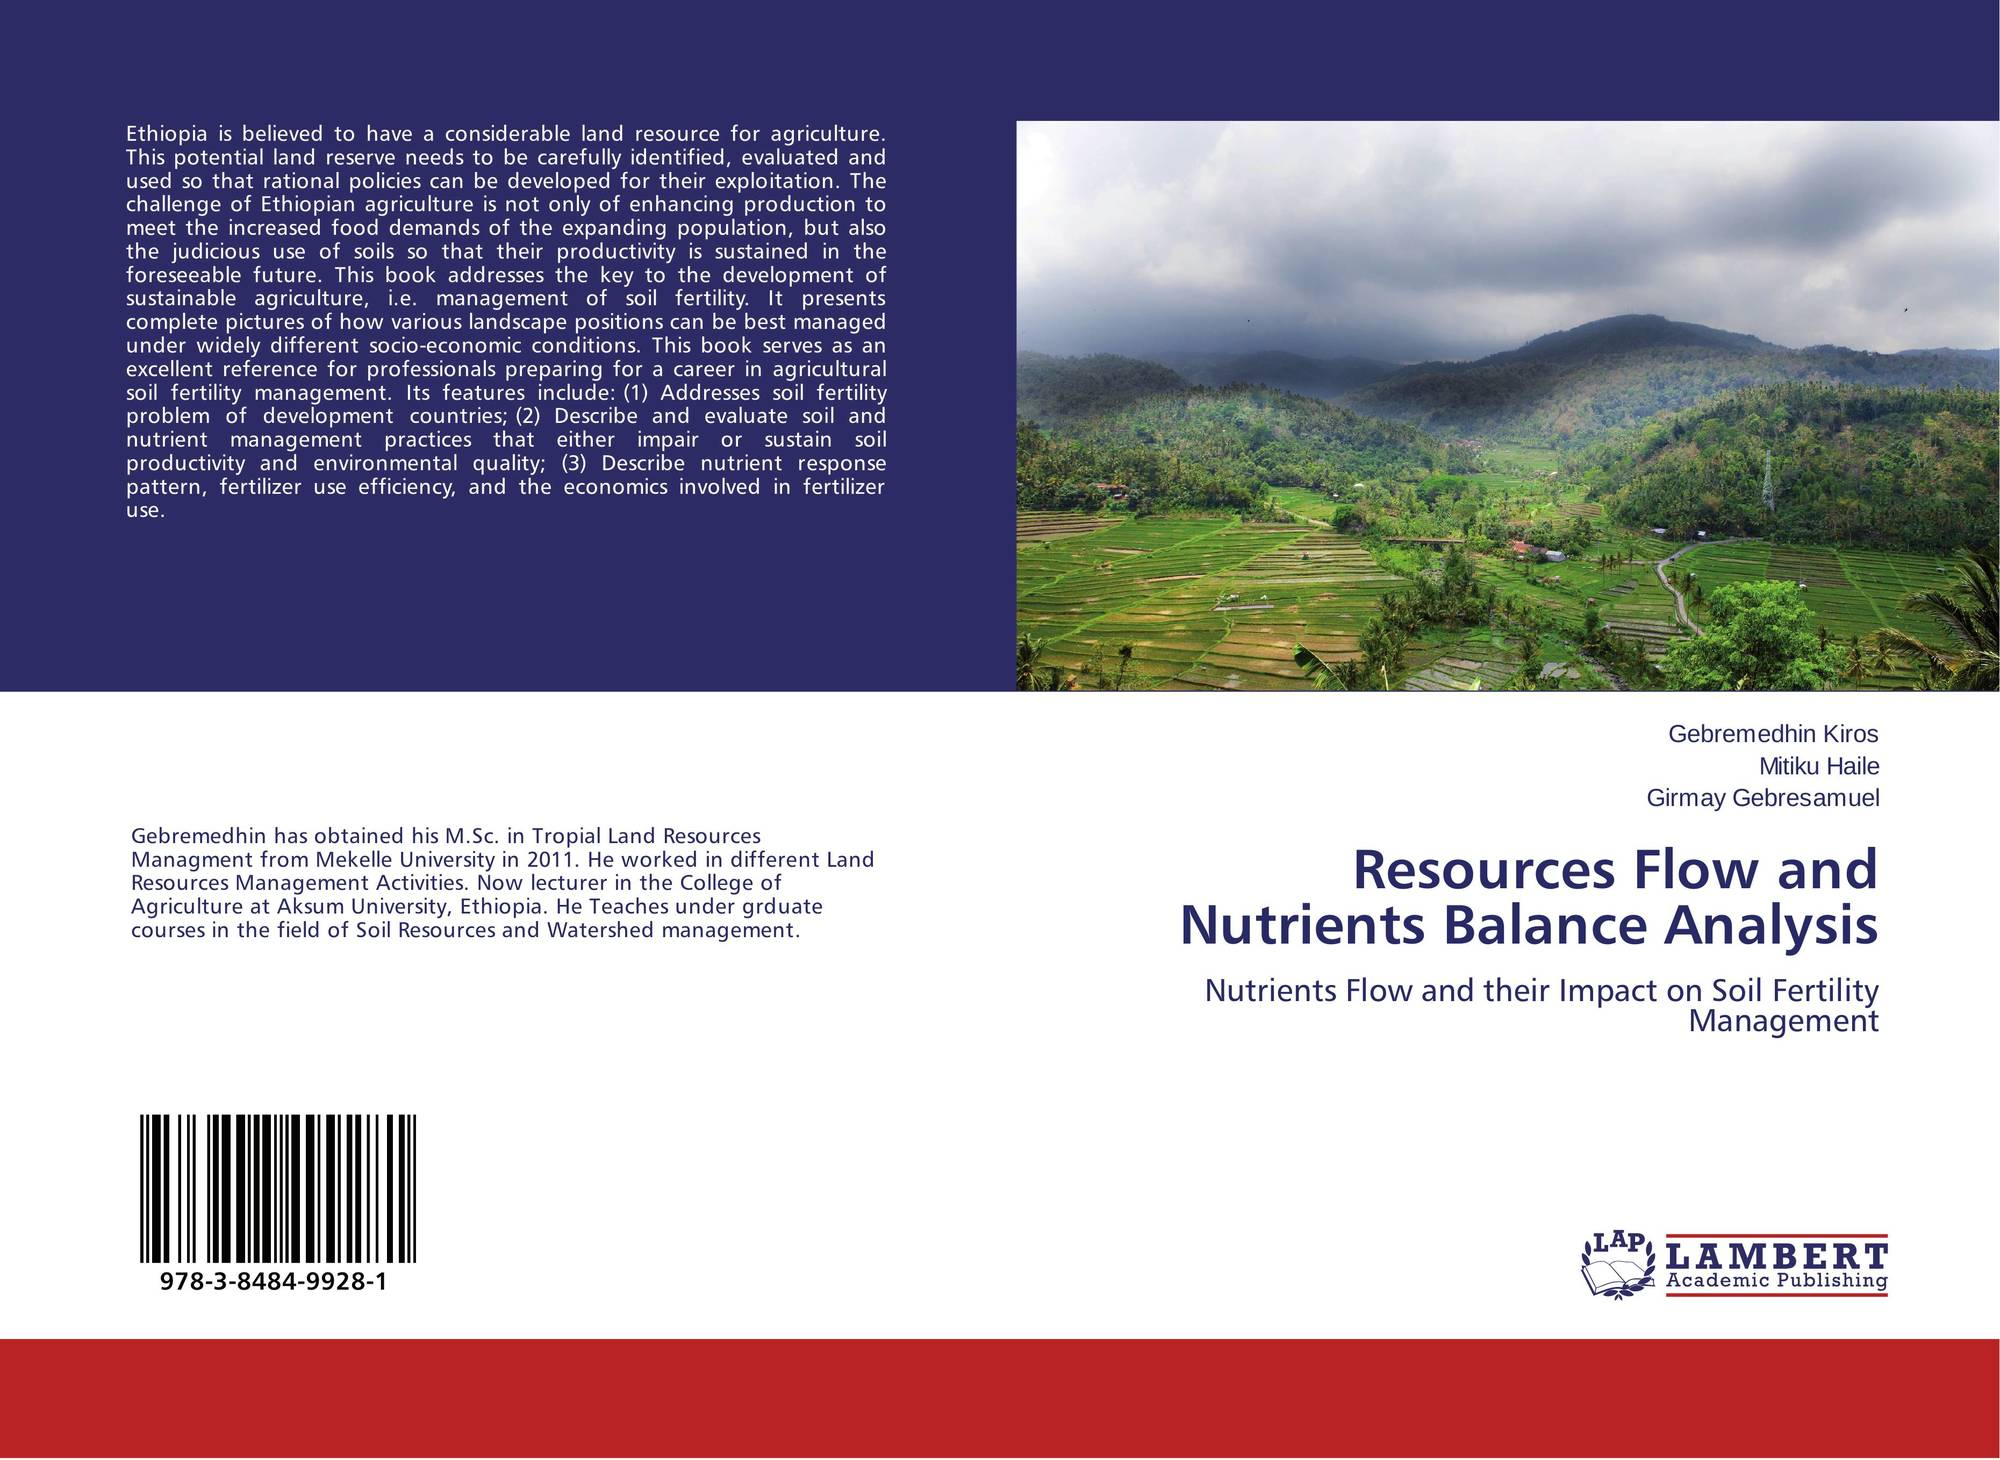 Resources Flow and Nutrients Balance Analysis, 978-3-8484-9928-1